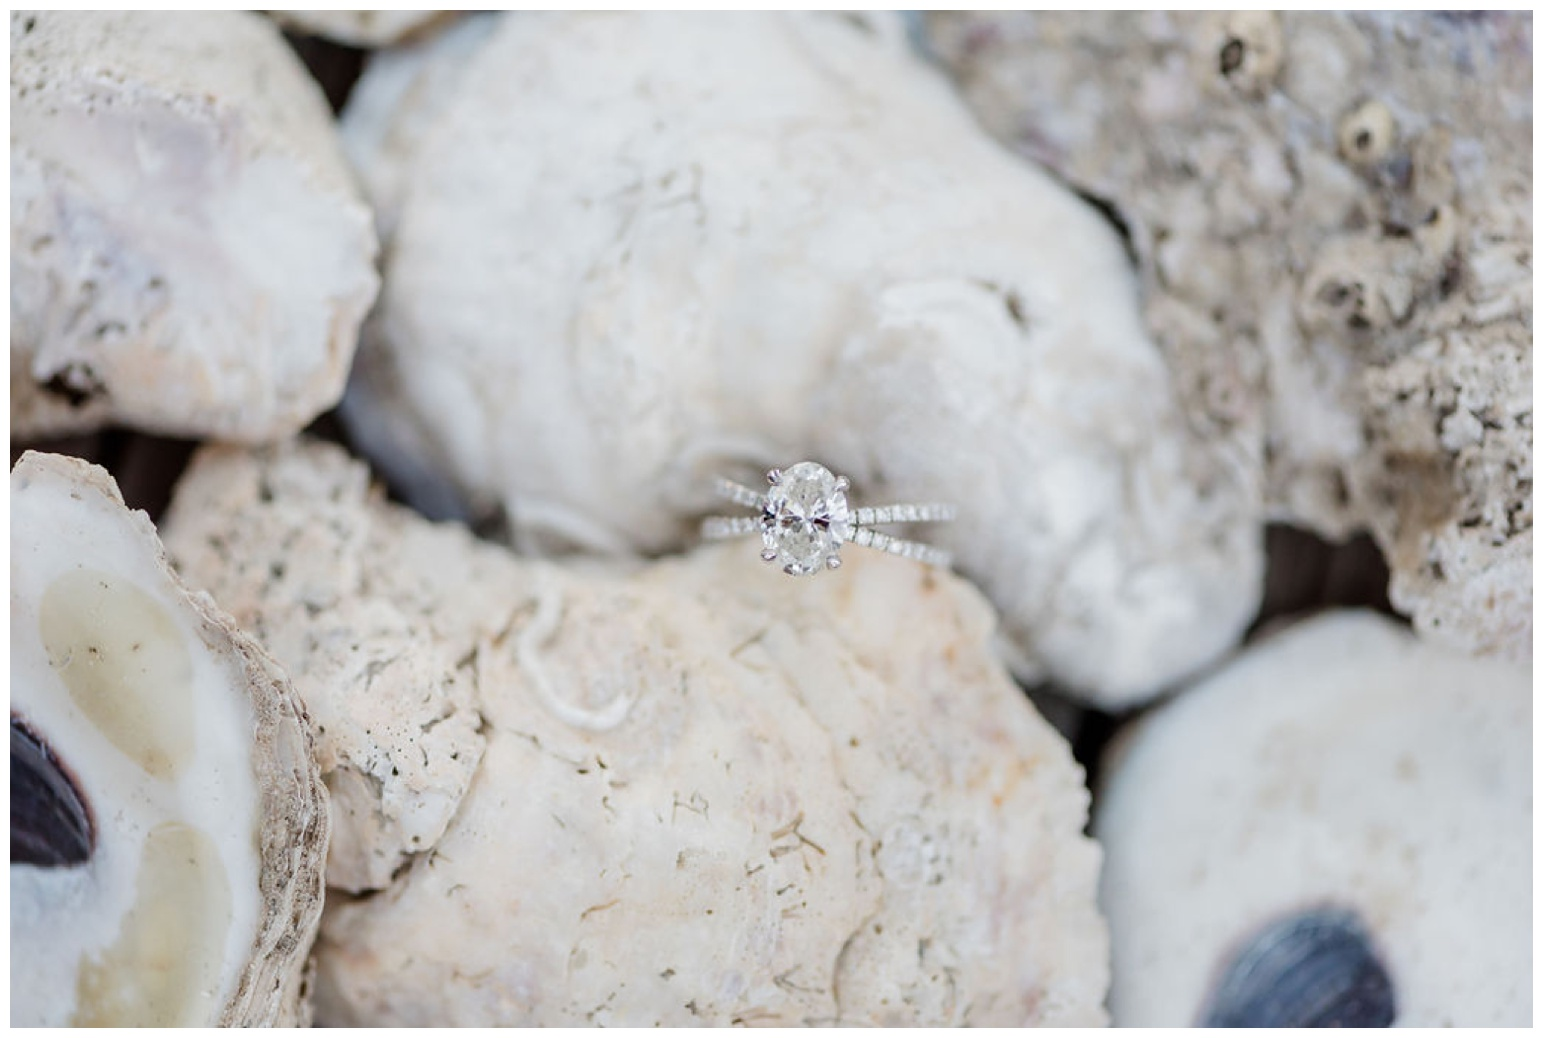 st. michaels engagement shoot - chesapeake bay inspired photo session - coastal maryland inspo full of oyster shells, sailboats, waterfront views from the dock and pier | now featured on My Eastern Shore Wedding